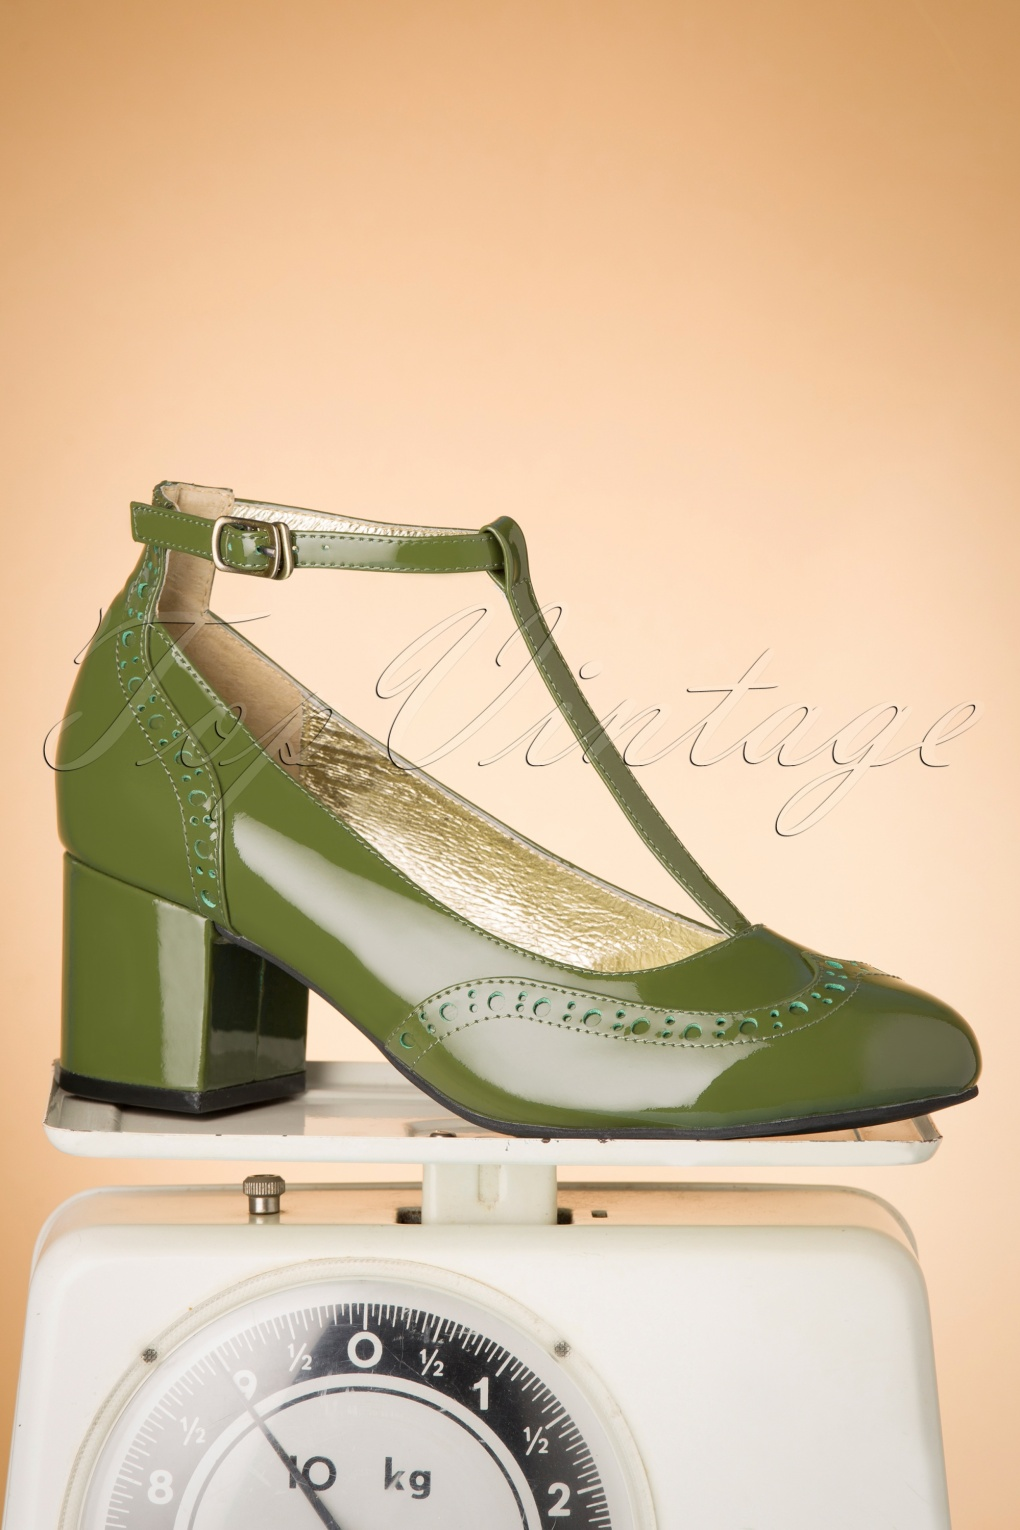 1960s Style Dresses, Clothing, Shoes UK 60s Eve Mad For Mod Block Heel Pumps in Grass Green £89.09 AT vintagedancer.com